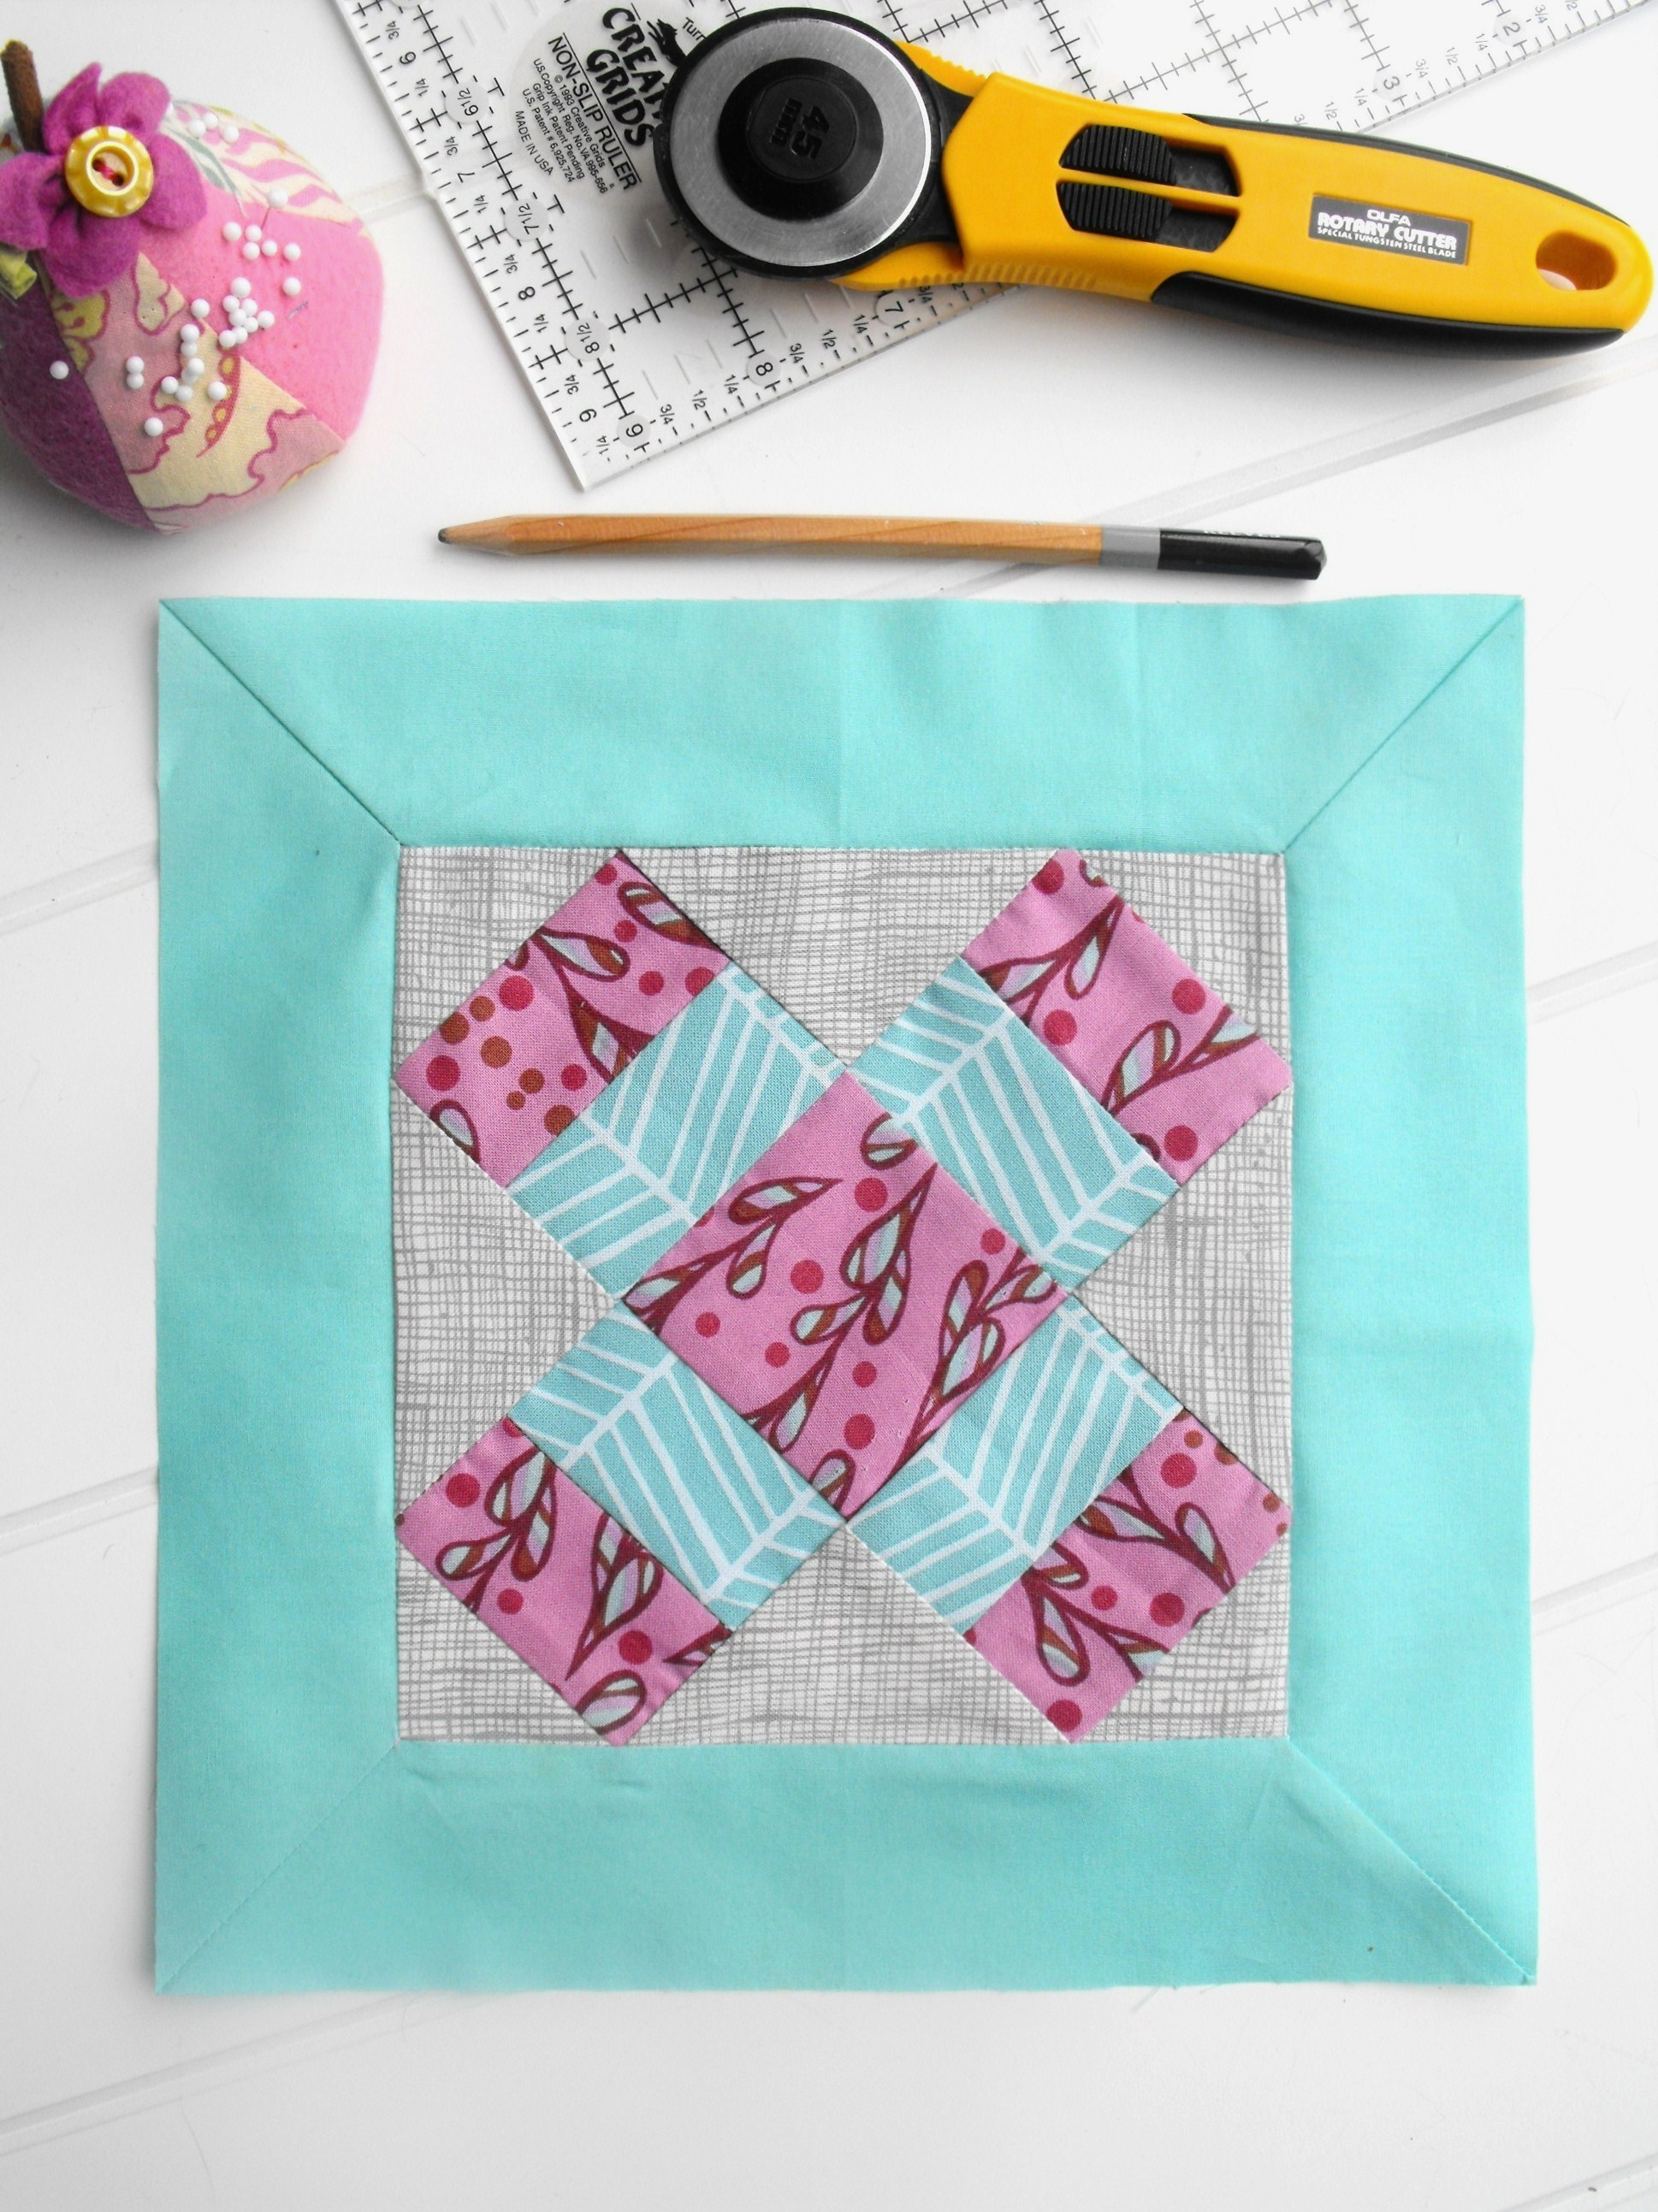 Learn how to sew mitered corners on a quilt border with this Bluprint tutorial